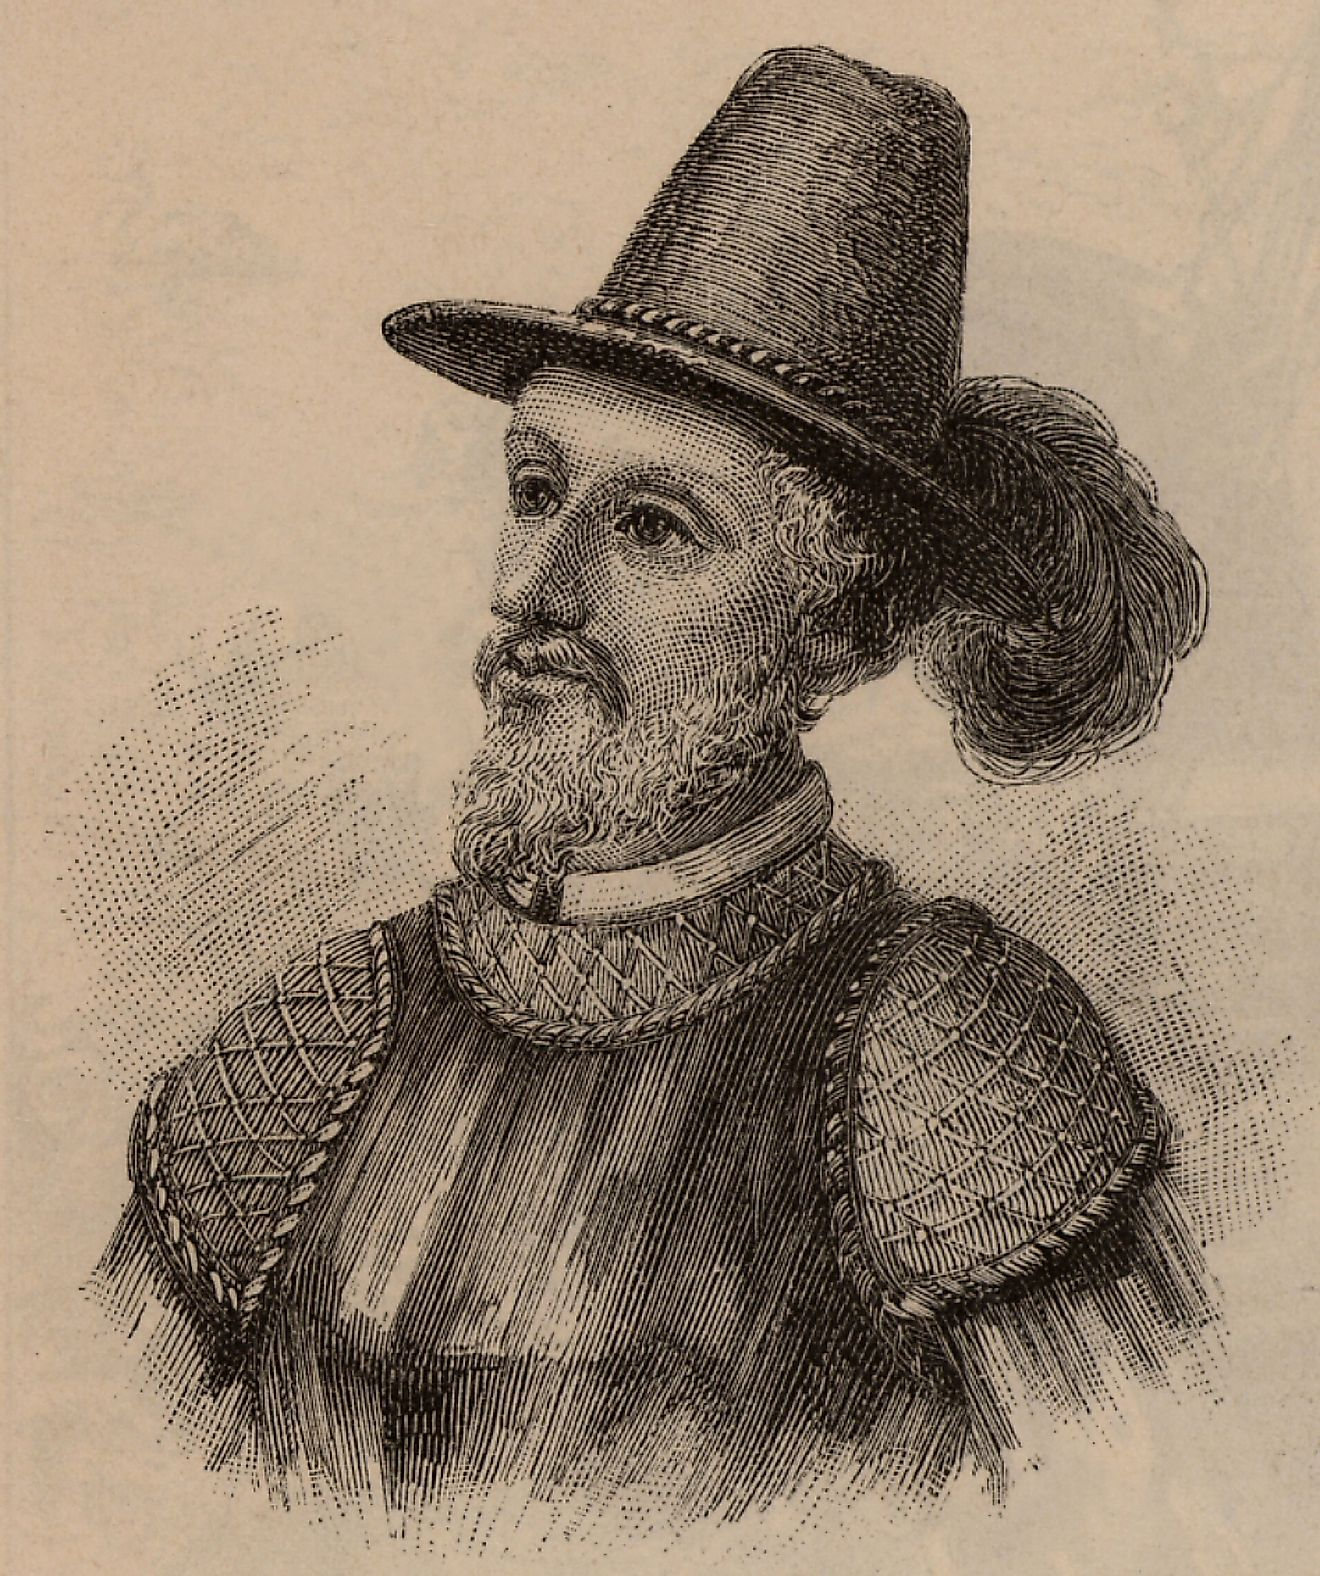 Juan Ponce de León led the first European expedition into Florida, and was appointed as the first Governor of Spanish Puerto Rico.